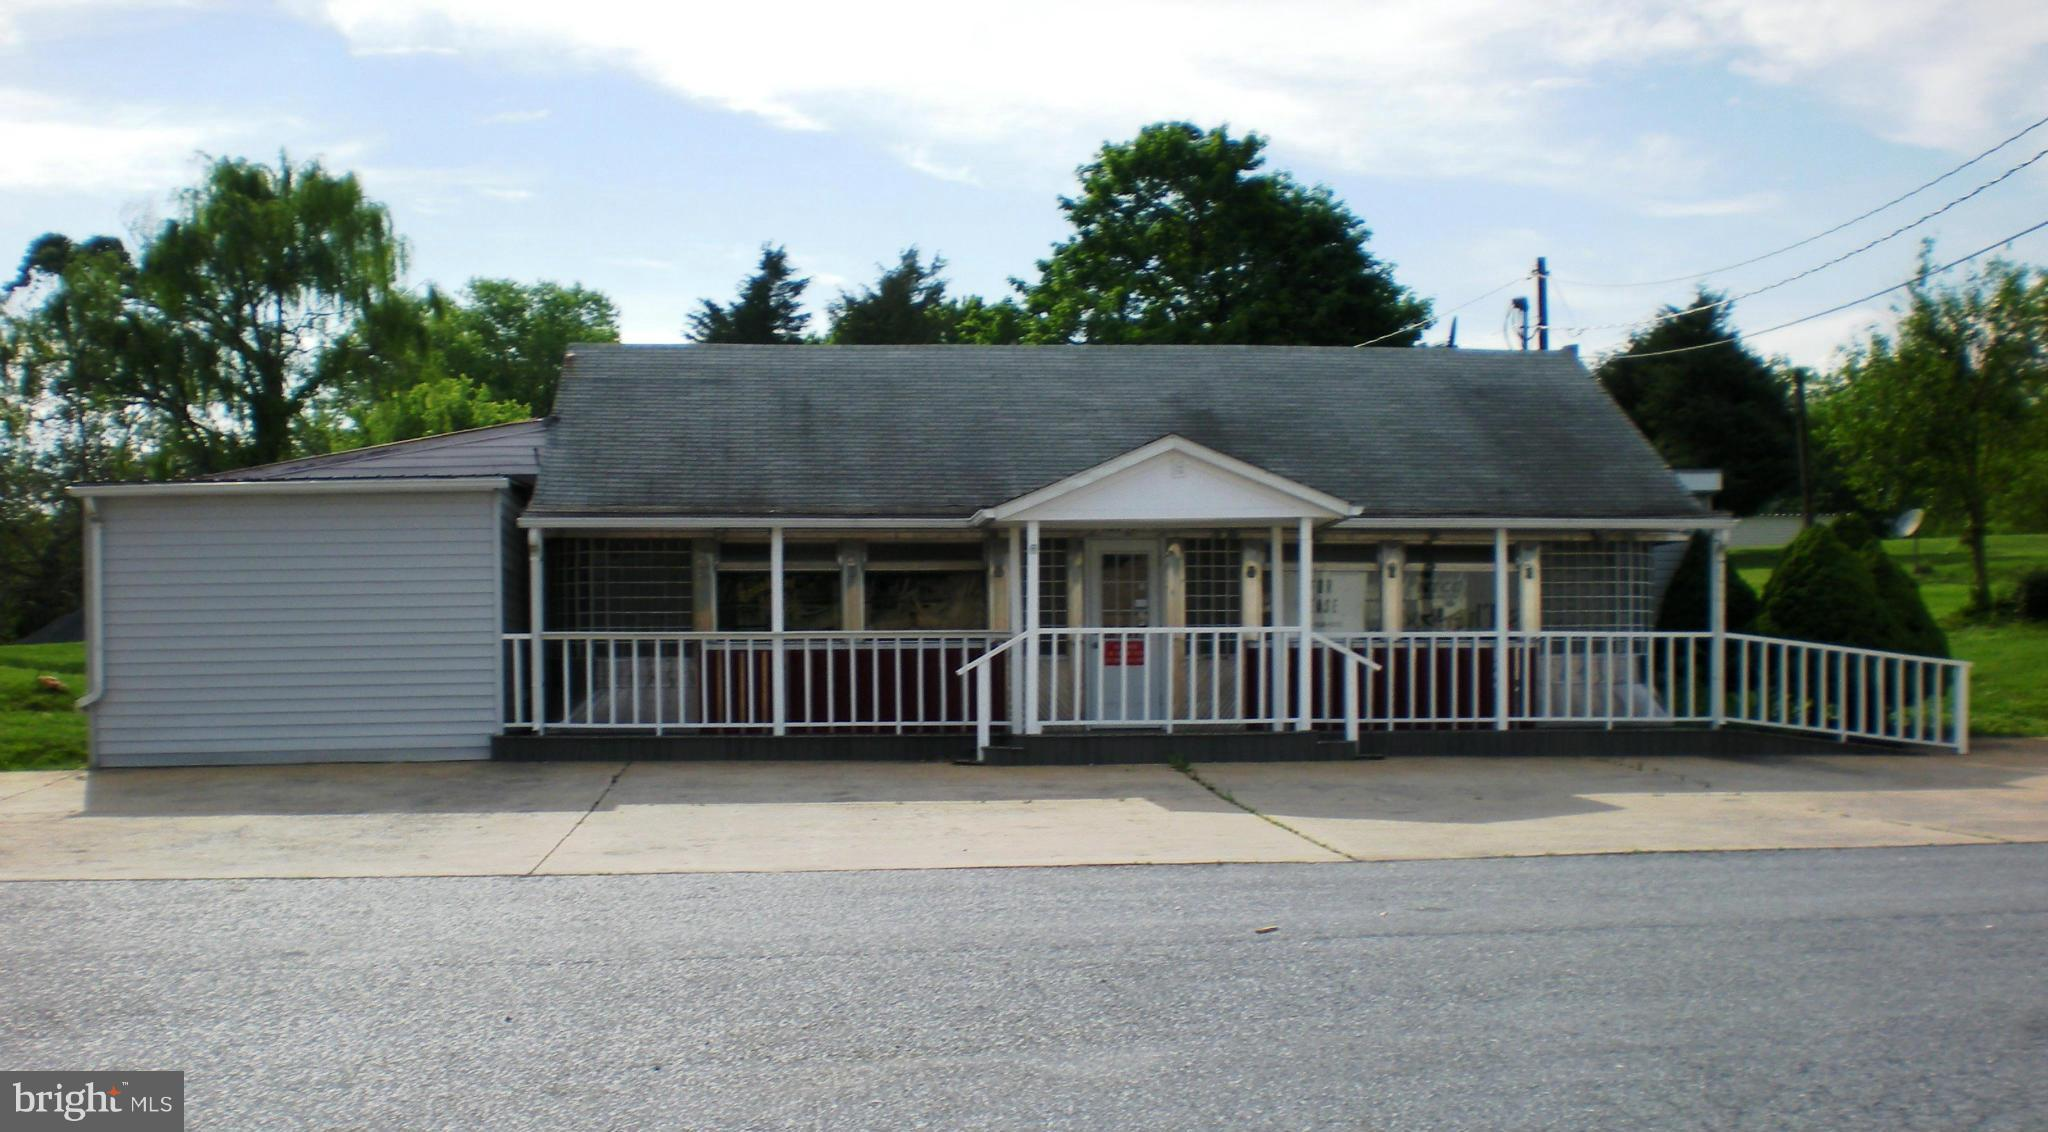 0 RT 340 S, CHARLES TOWN, WV 25414